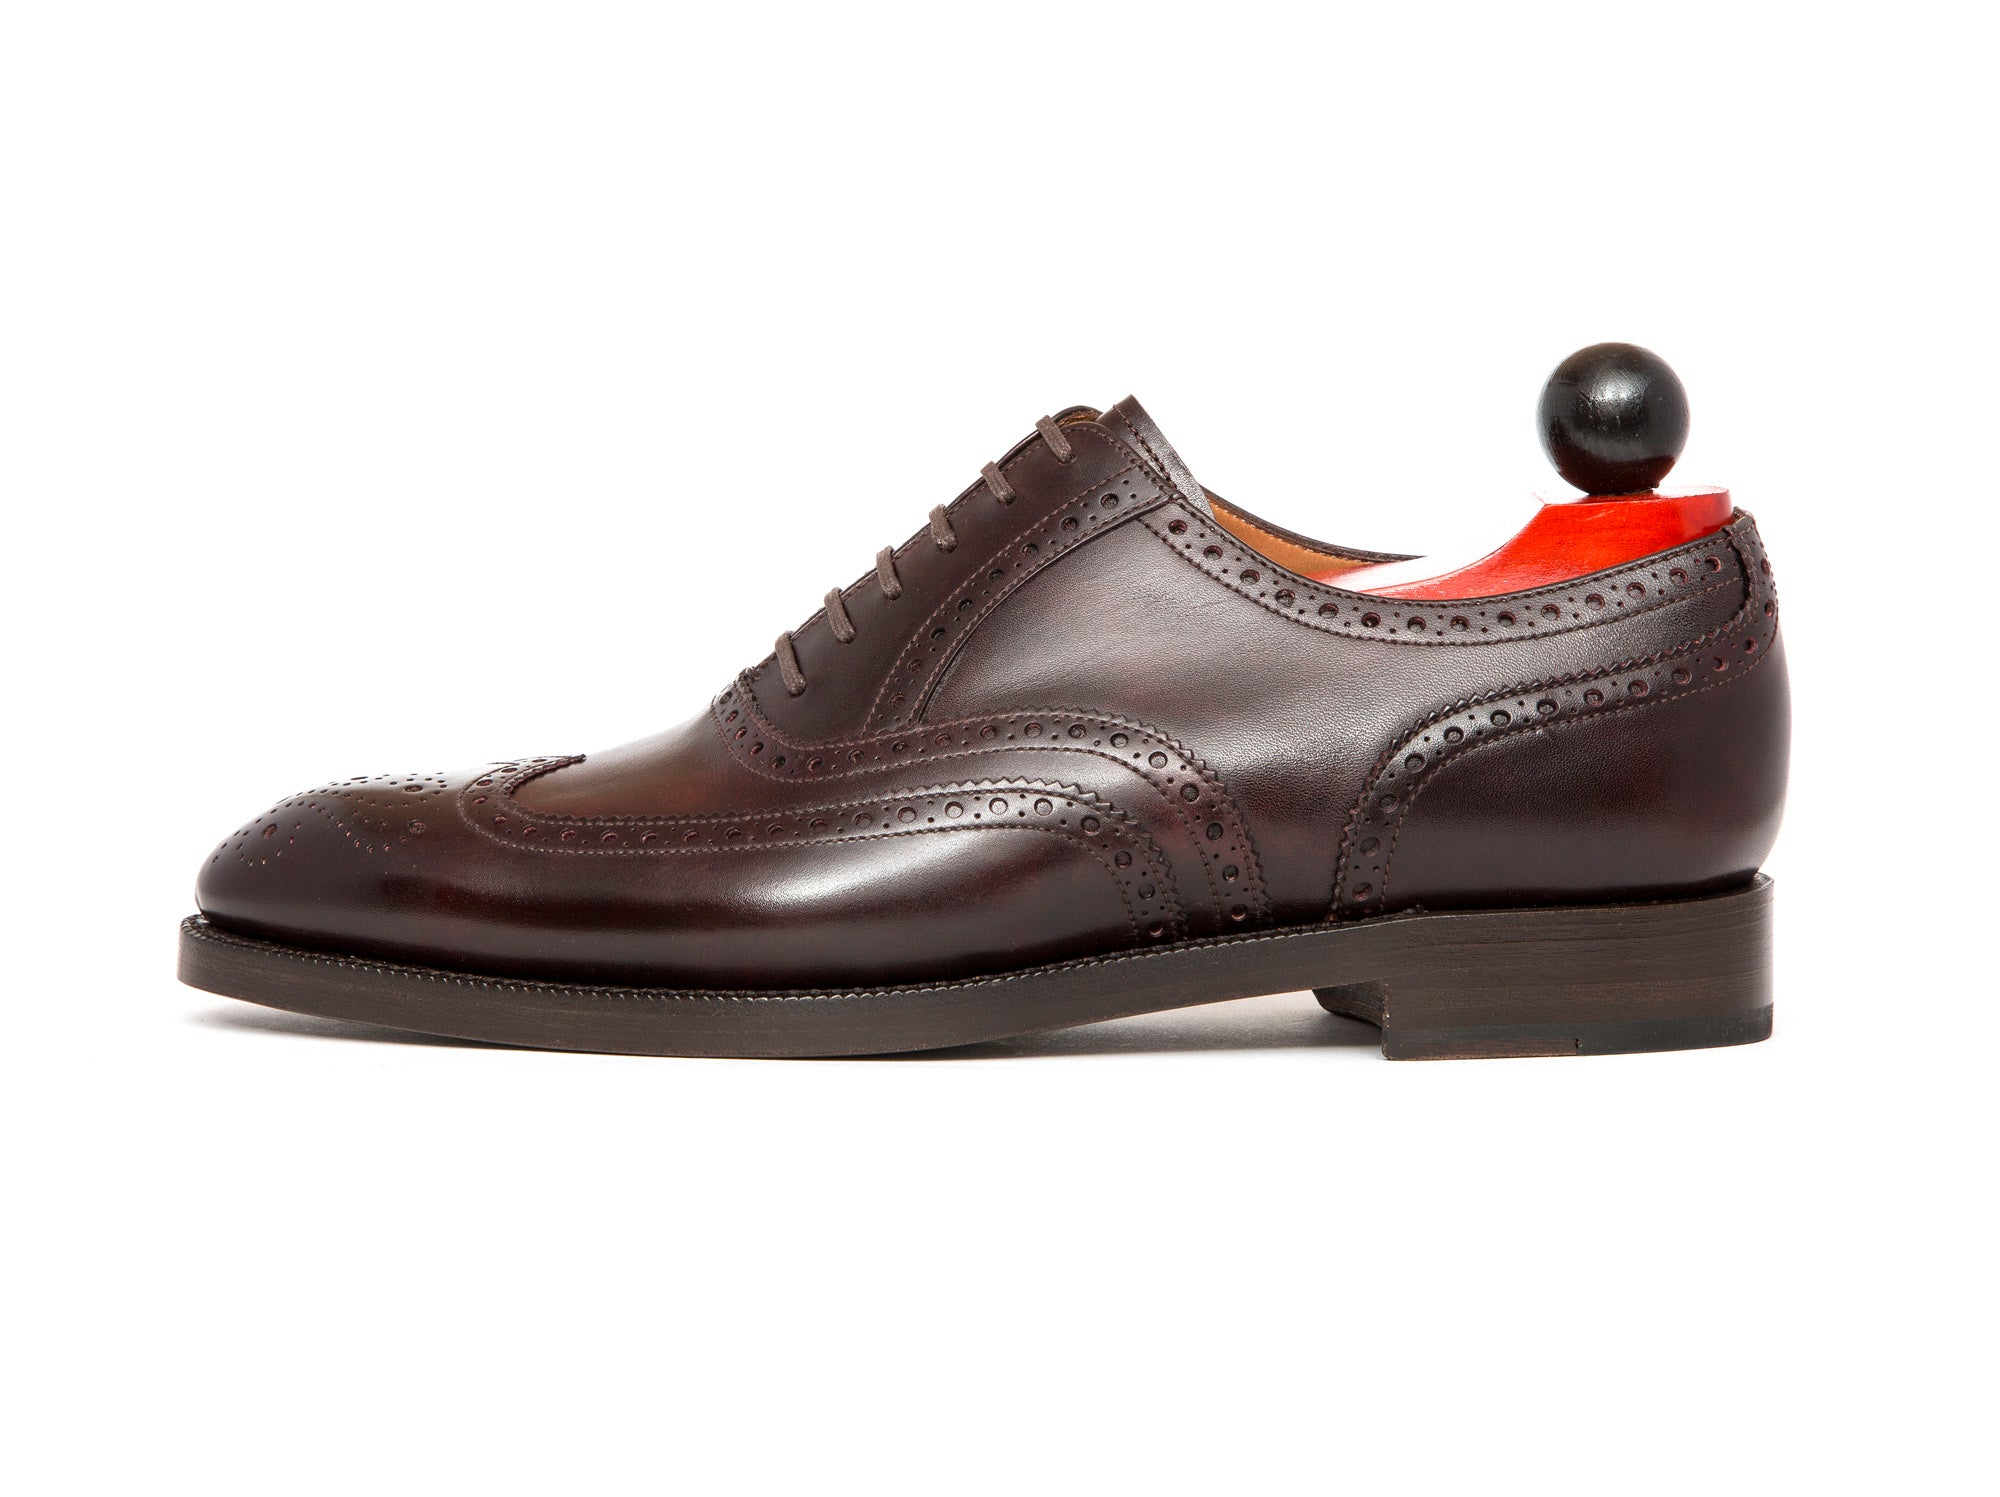 McClure - MTO - Plum Museum Calf - NGT Last - Double Leather Sole